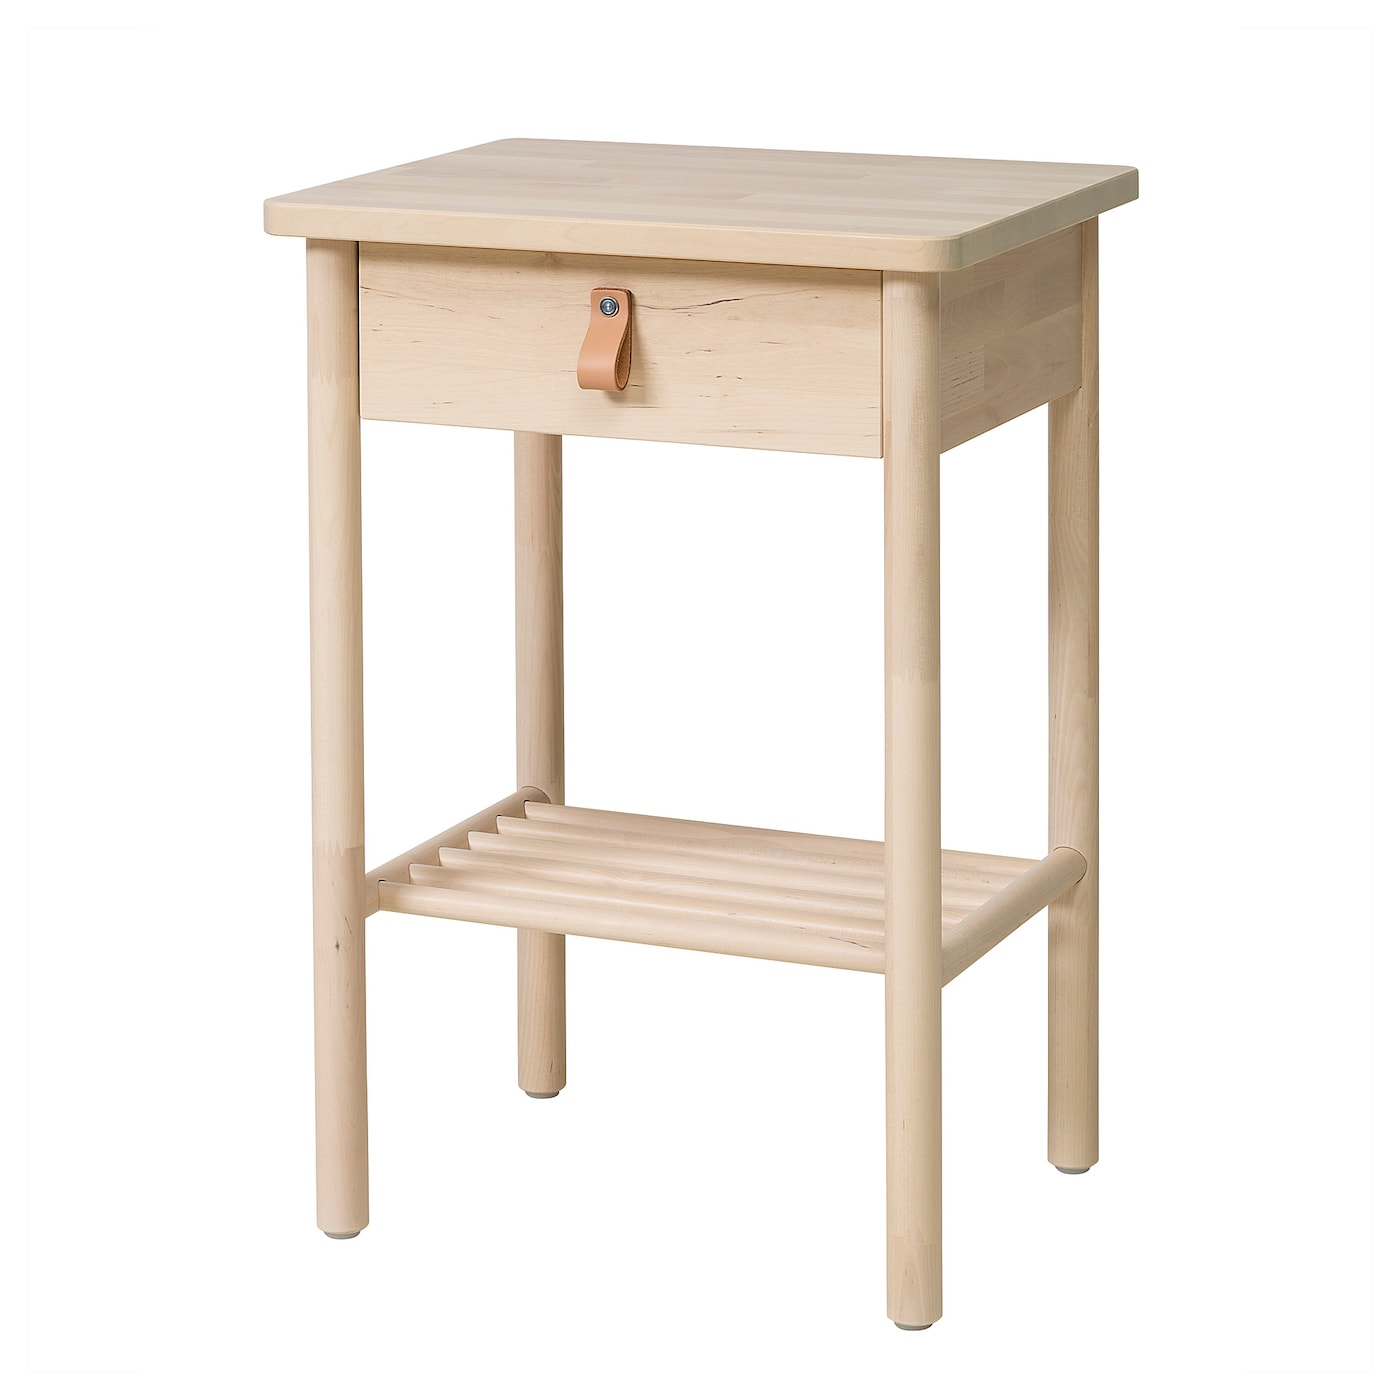 Genial IKEA BJÖRKSNÄS Bedside Table Smooth Running Drawer With Pull Out Stop.